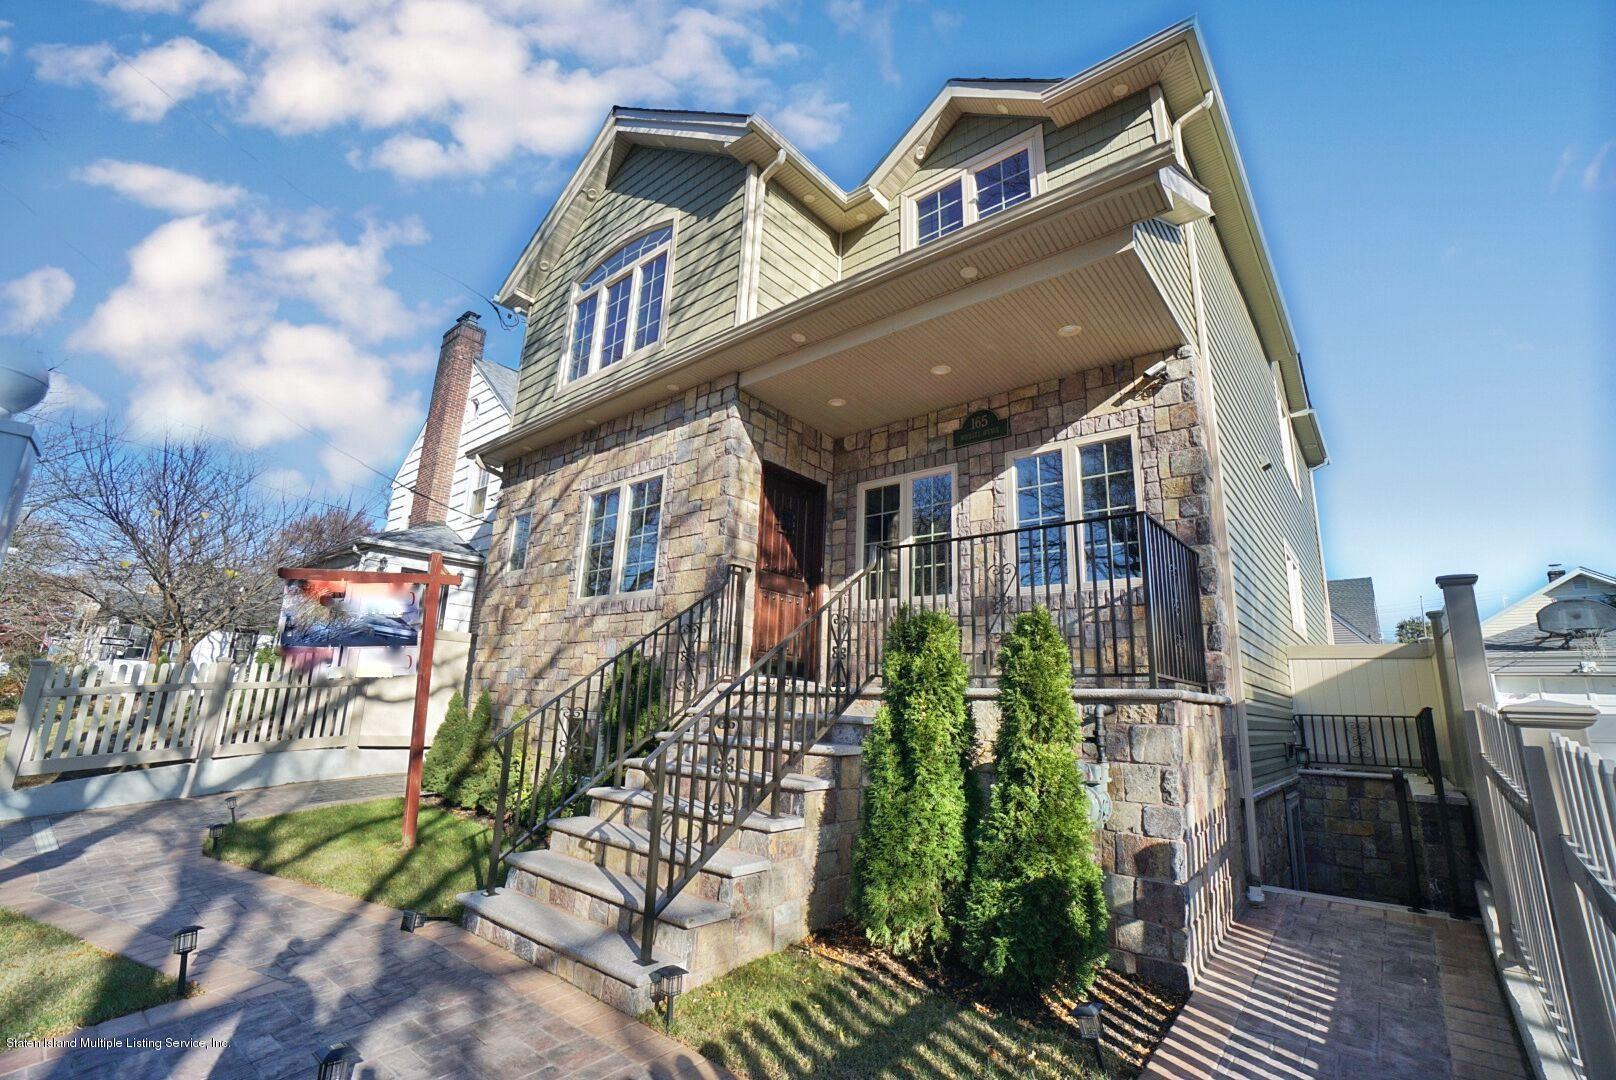 Single Family - Detached 165 Woolley Avenue  Staten Island, NY 10314, MLS-1128875-2